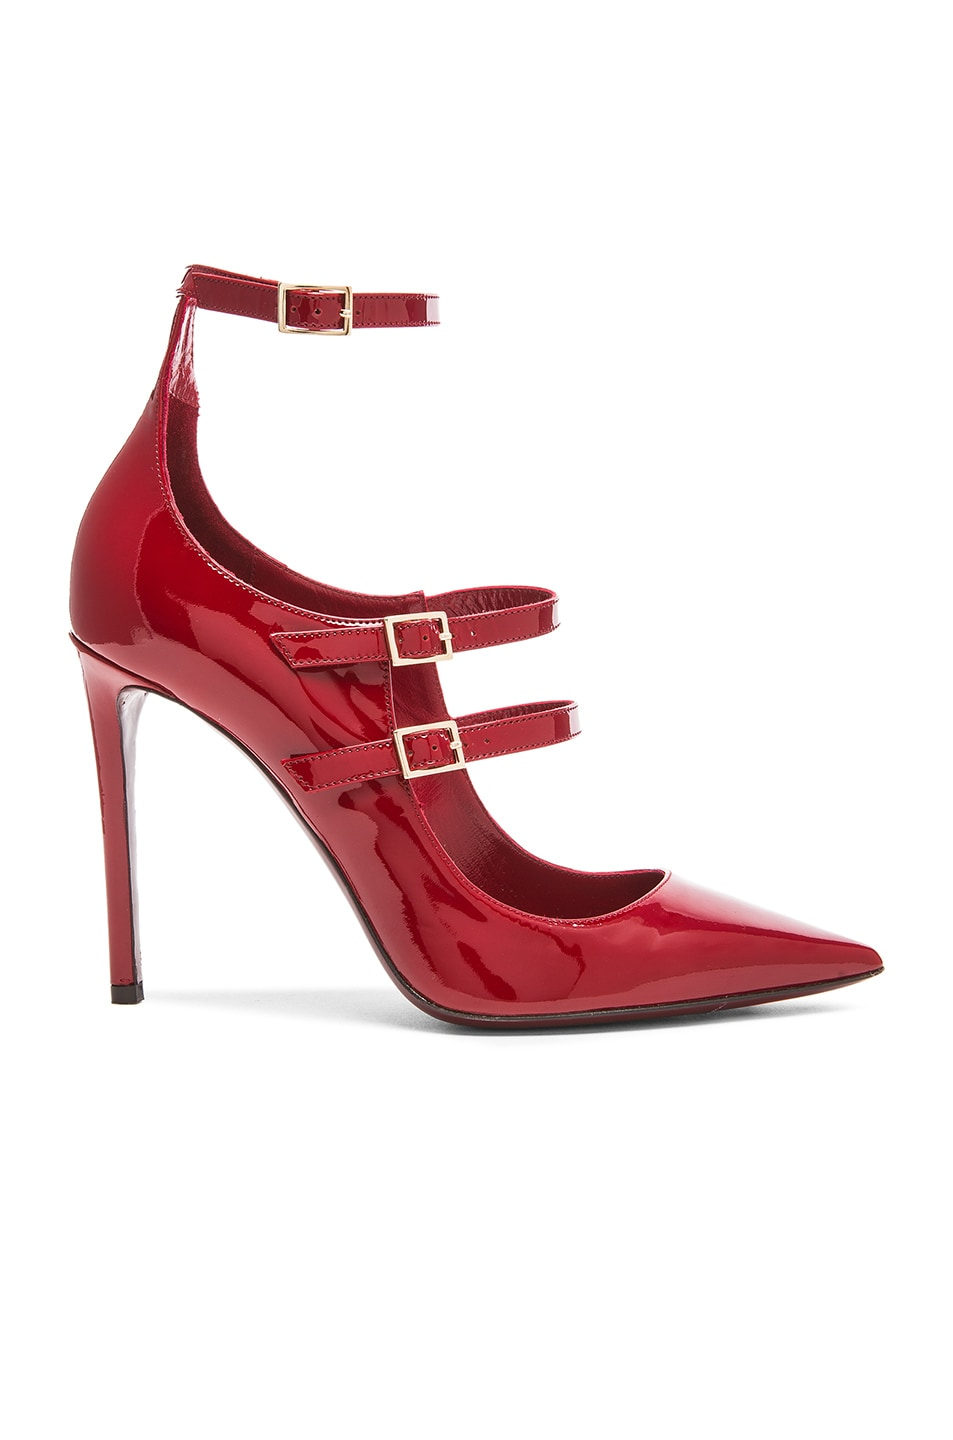 Image 1 of Tamara Mellon Possession Patent Leather Heels in Red